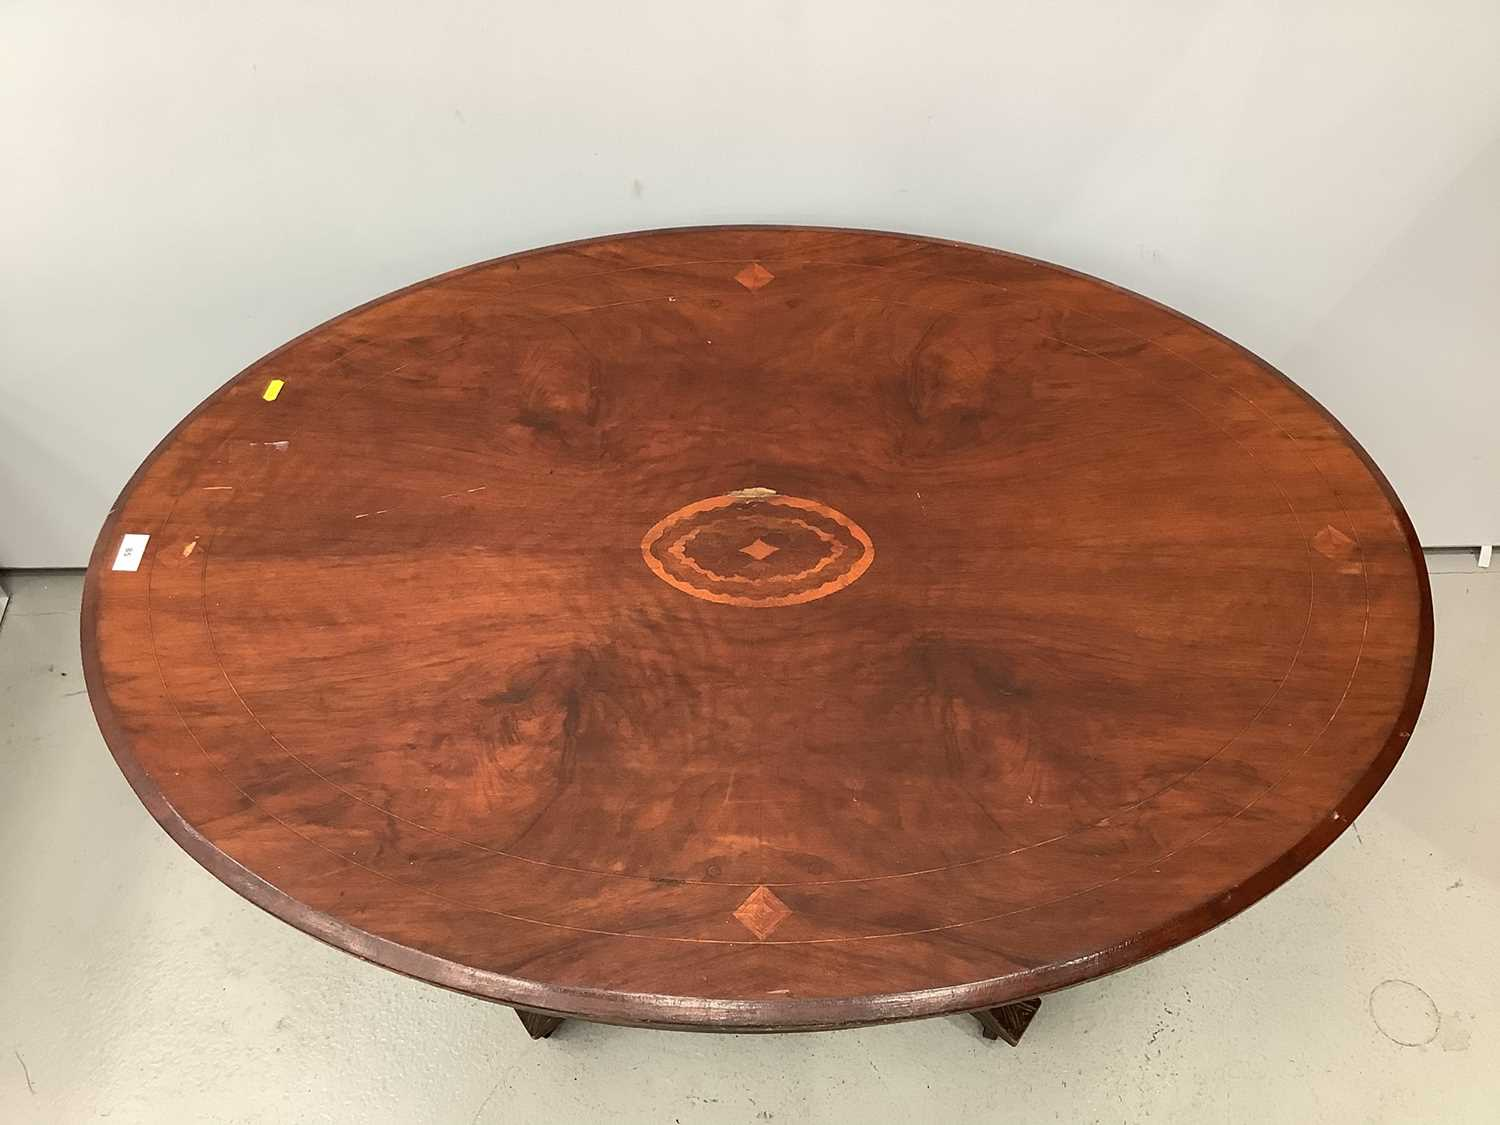 Victorian inlaid oval tilt top loo table 117cm - Image 2 of 5